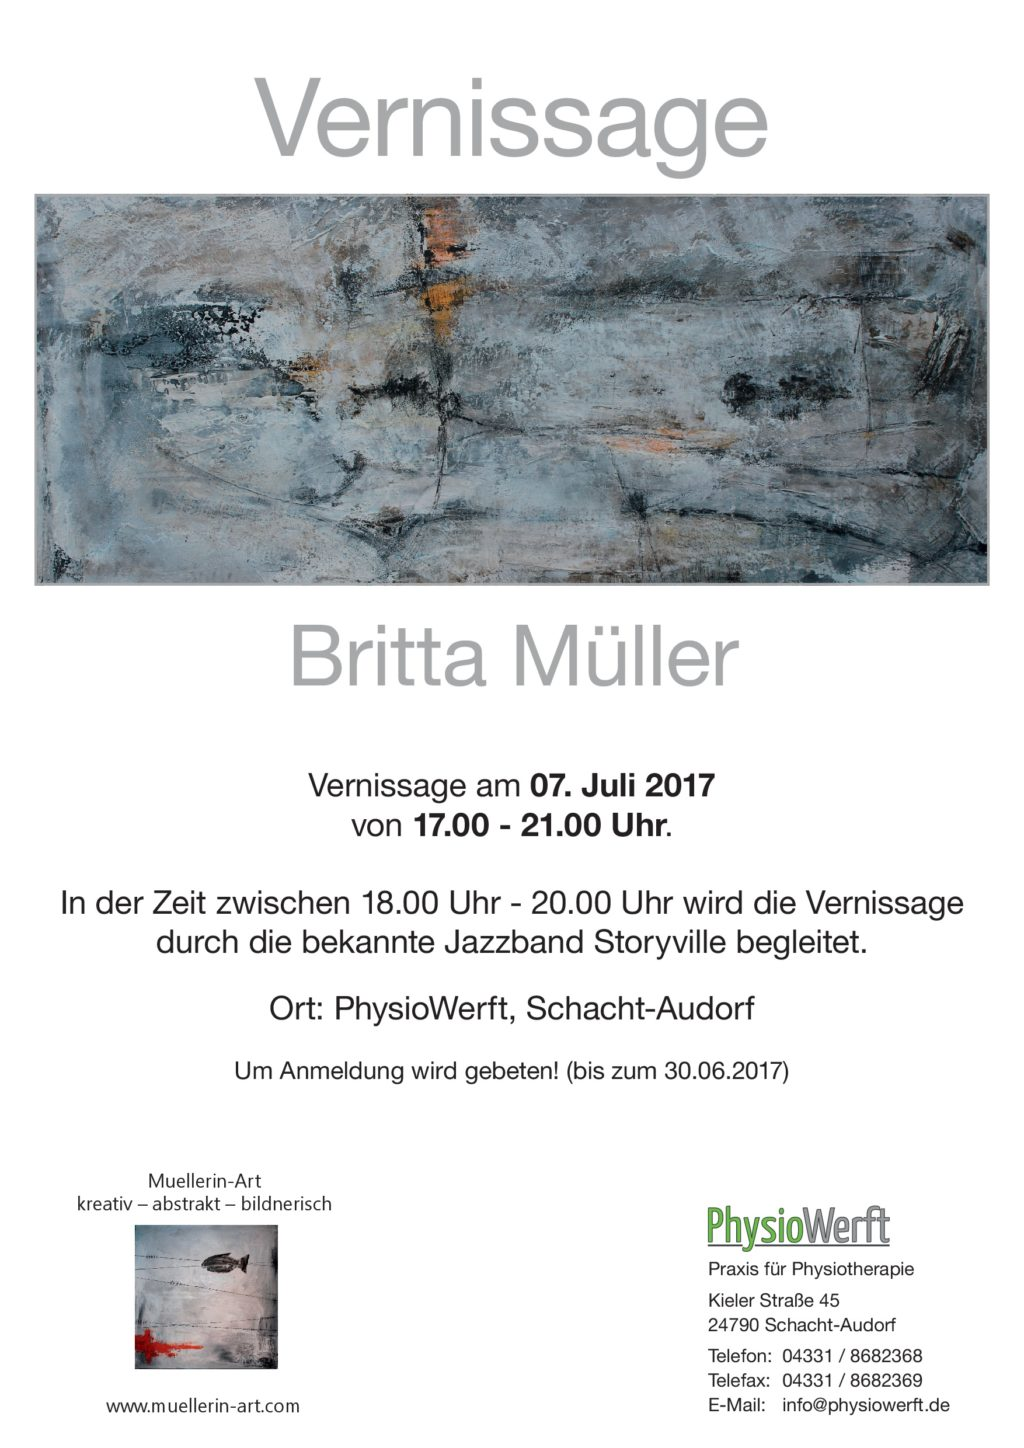 Vernissage in der PhysioWerft am 07.07.